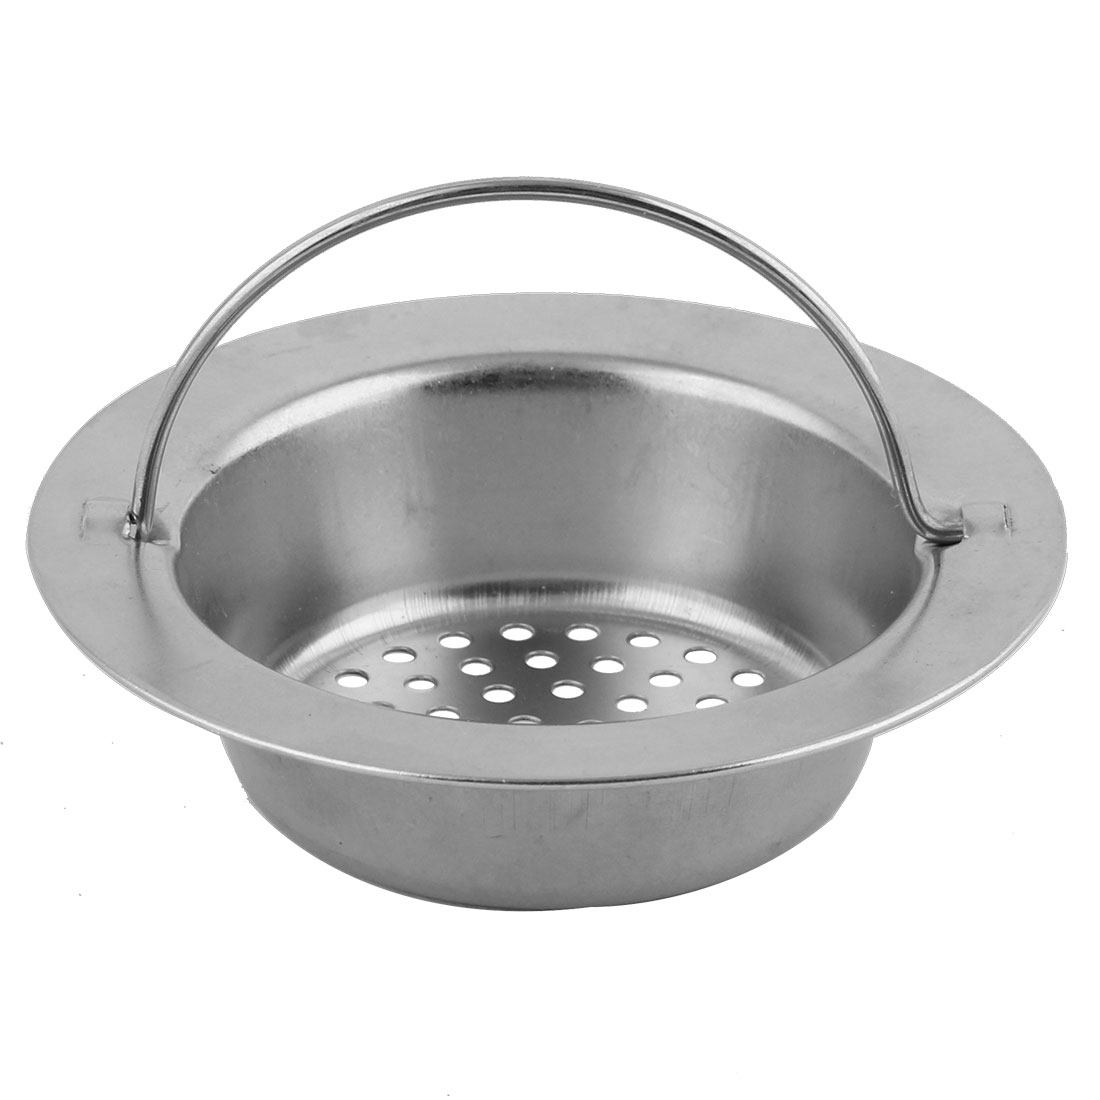 Kitchenware Stainless Steel Garbage Stopper Sink Strainer Silver Tone 90mm Dia